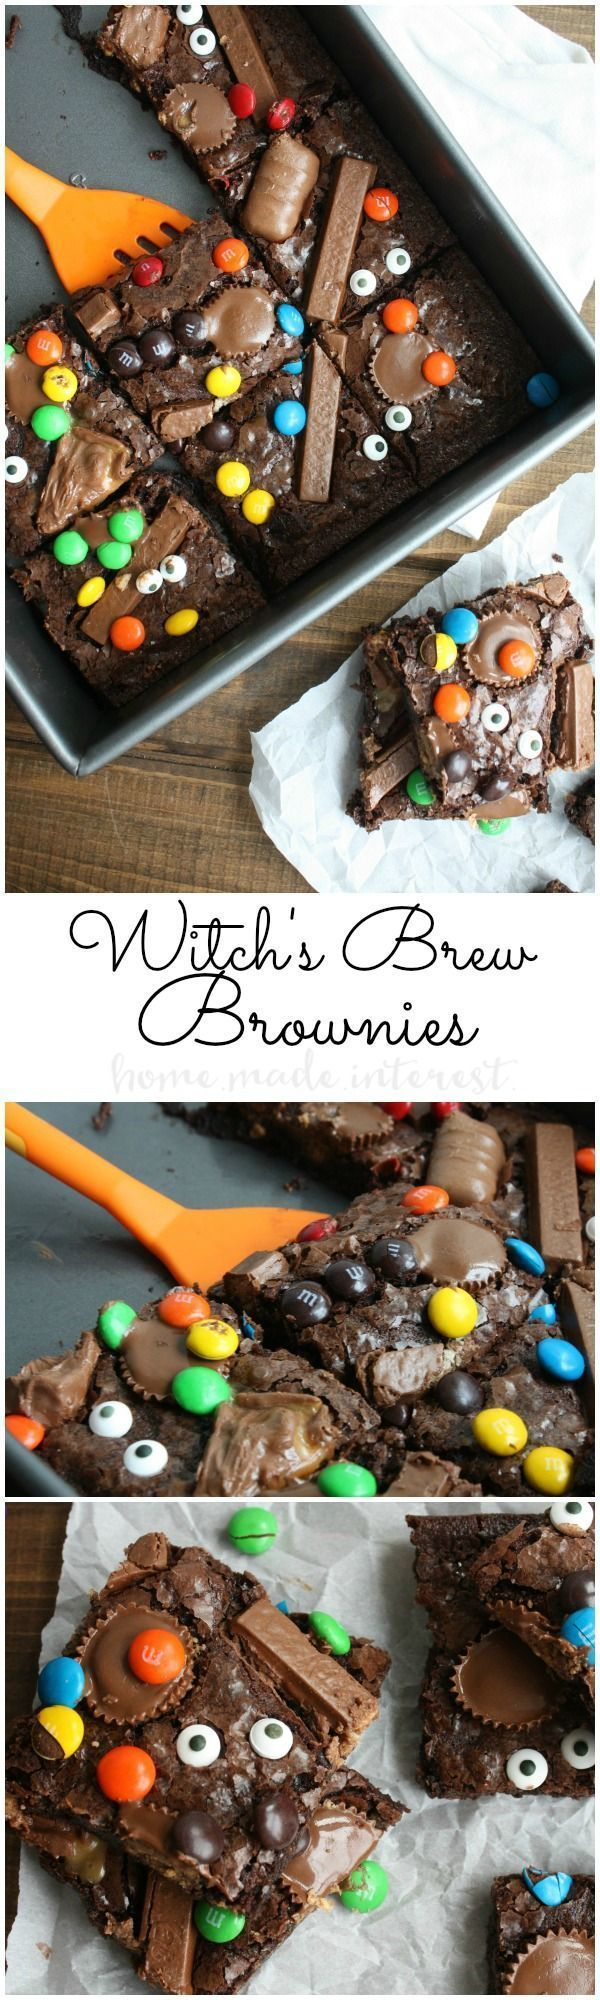 These ooey, gooey, chocolate brownies are an easy recipe for using up all of that leftover Halloween candy. These are the perfect Halloween Dessert recipe for your Halloween party or you can just make them for the kids with all of that Halloween candy the